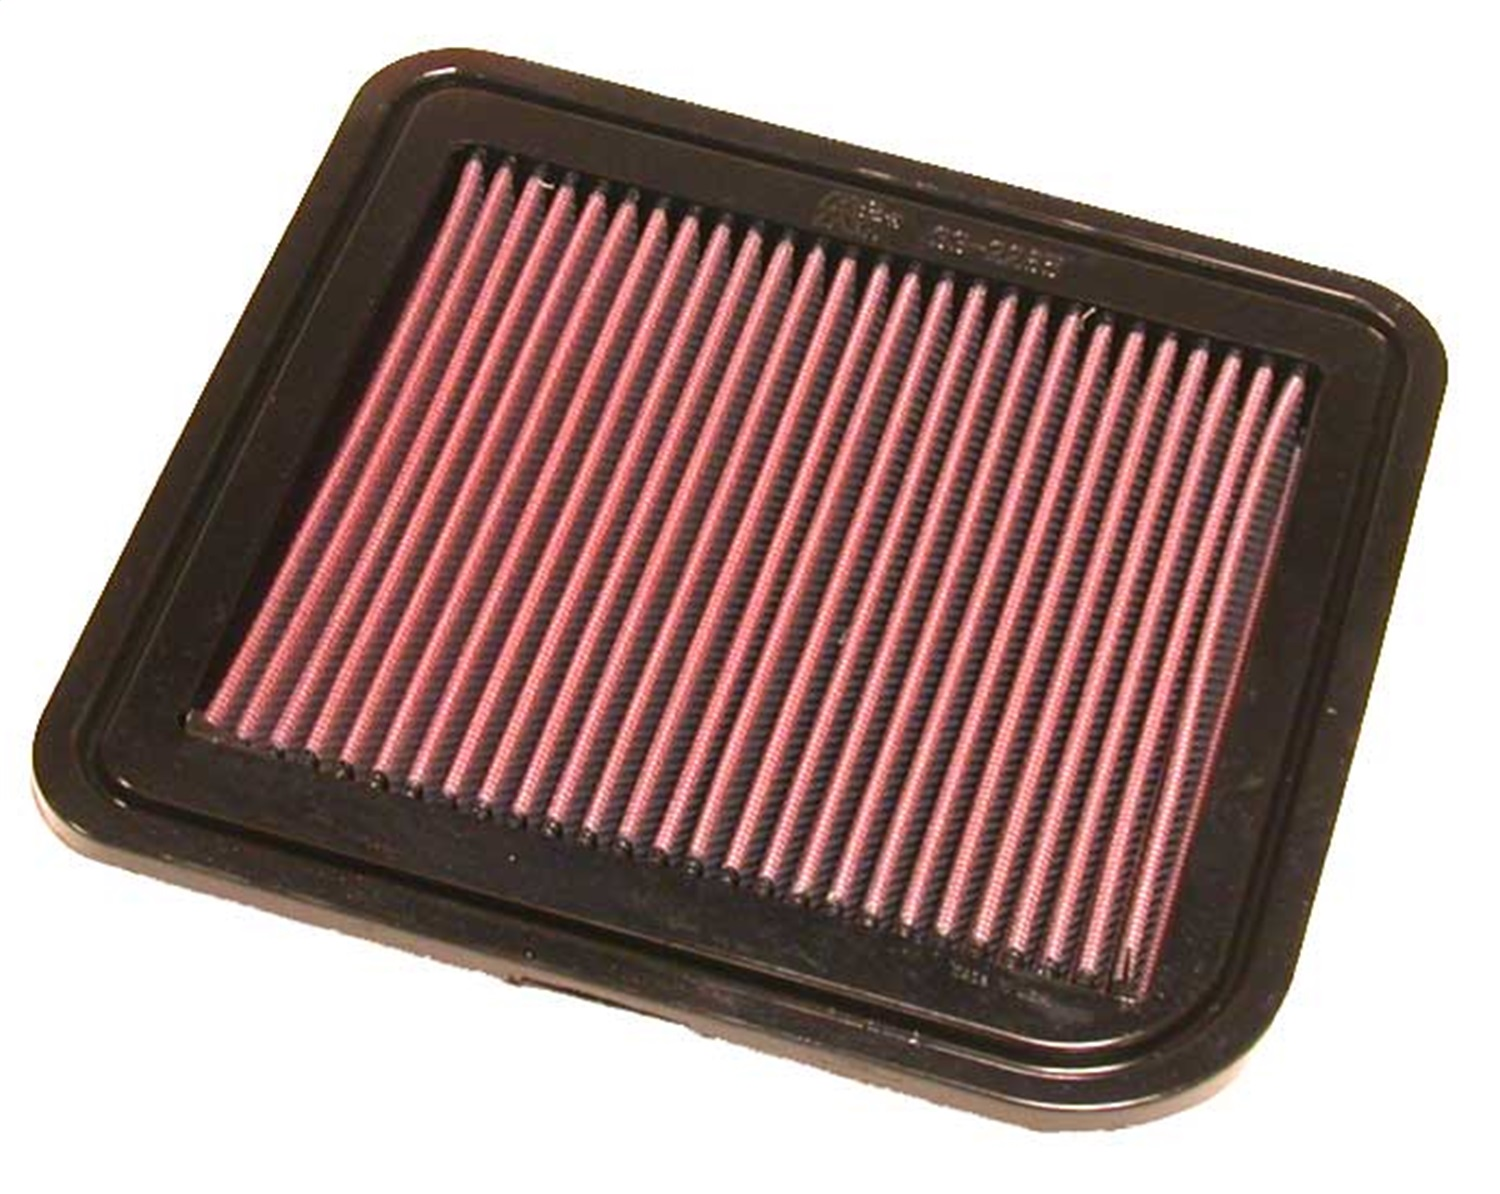 K&N Filters 33-2285 Air Filter Fits 04-12 Eclipse Endeavor Galant 33-2285